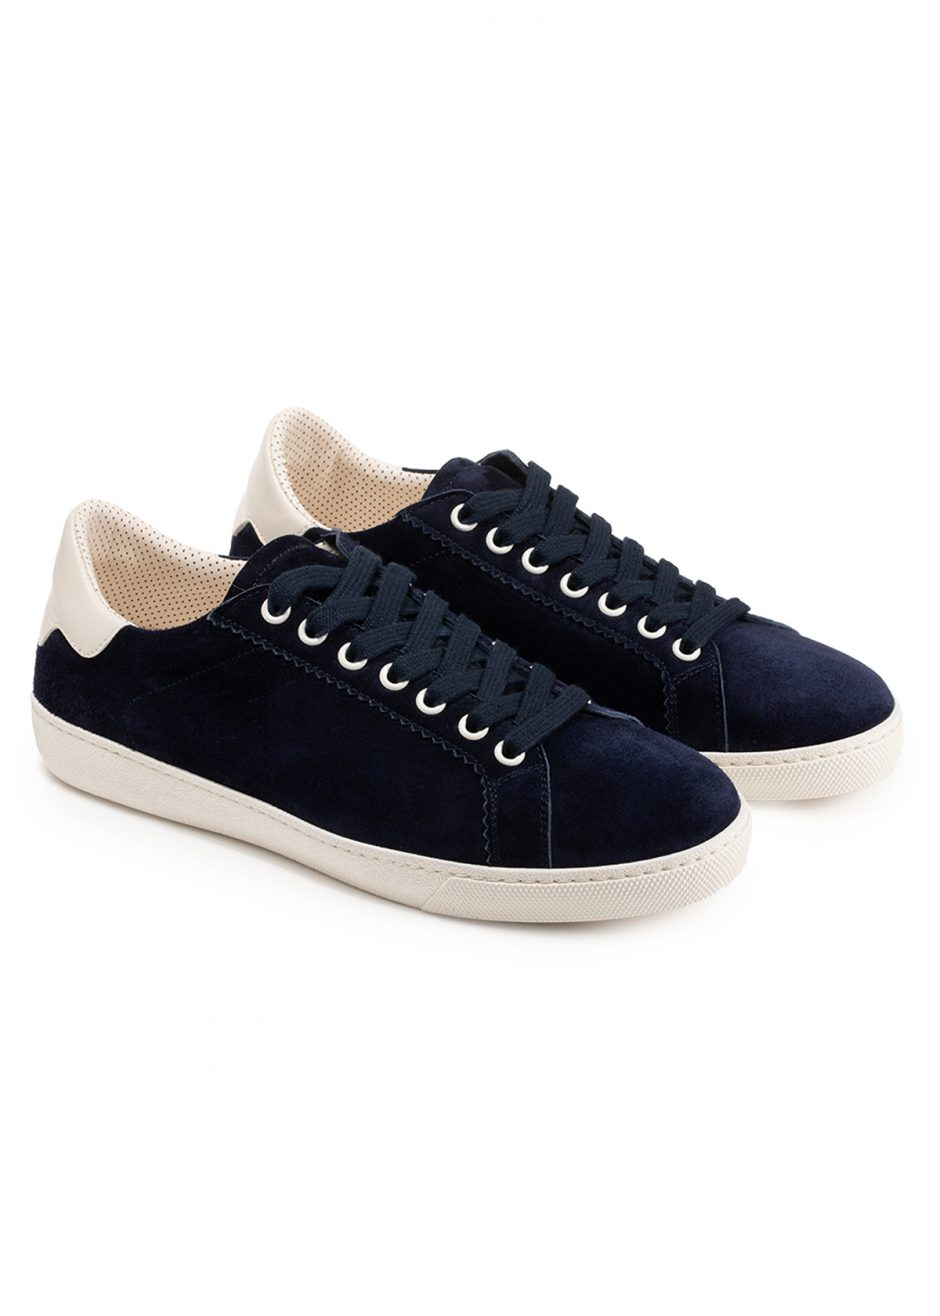 Jackie – Sneakers in pelle suede effetto cachemire